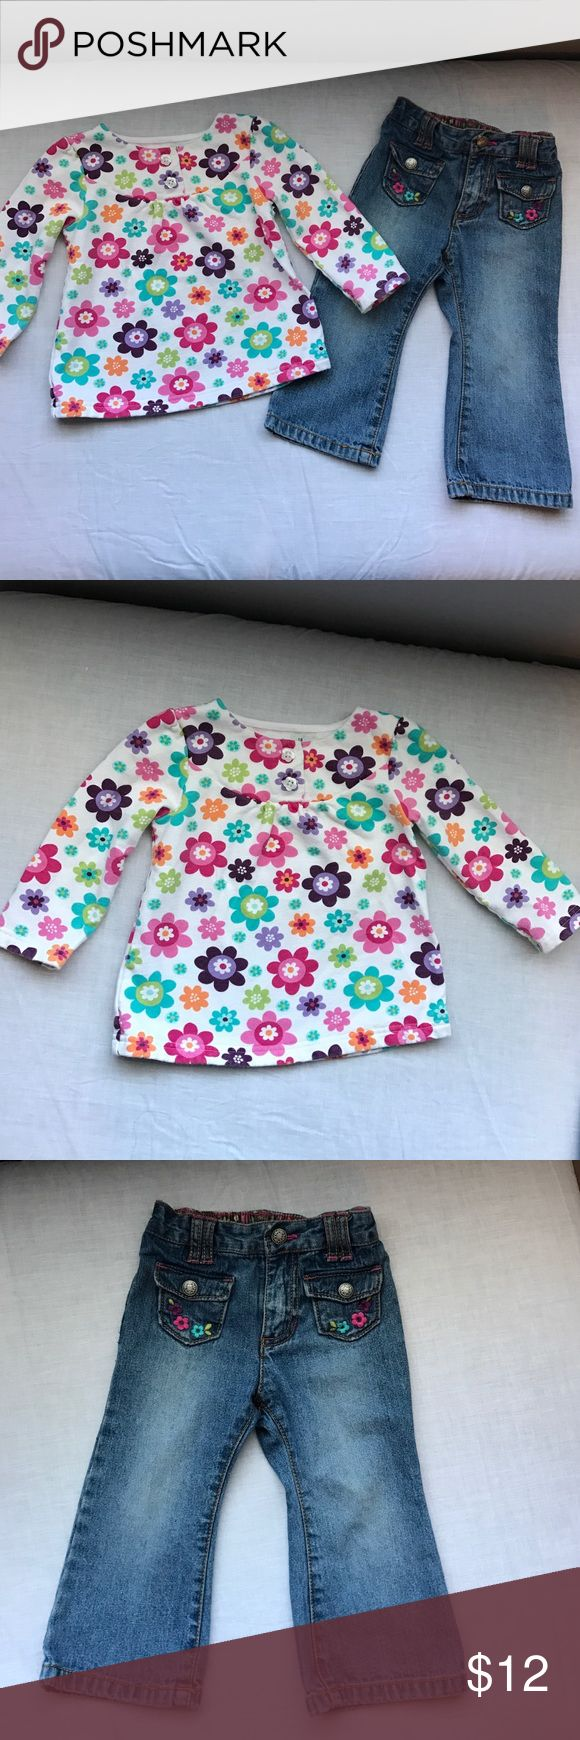 Jumping Beans top and Carters Jeans Jumping Beans floral patter top, sweatshirt material and Carters brand jeans with floral embroidery detail. Both items are size 18 months and in excellent condition no rips or stains. I have lots of children's clothing check out my closet! Matching Sets